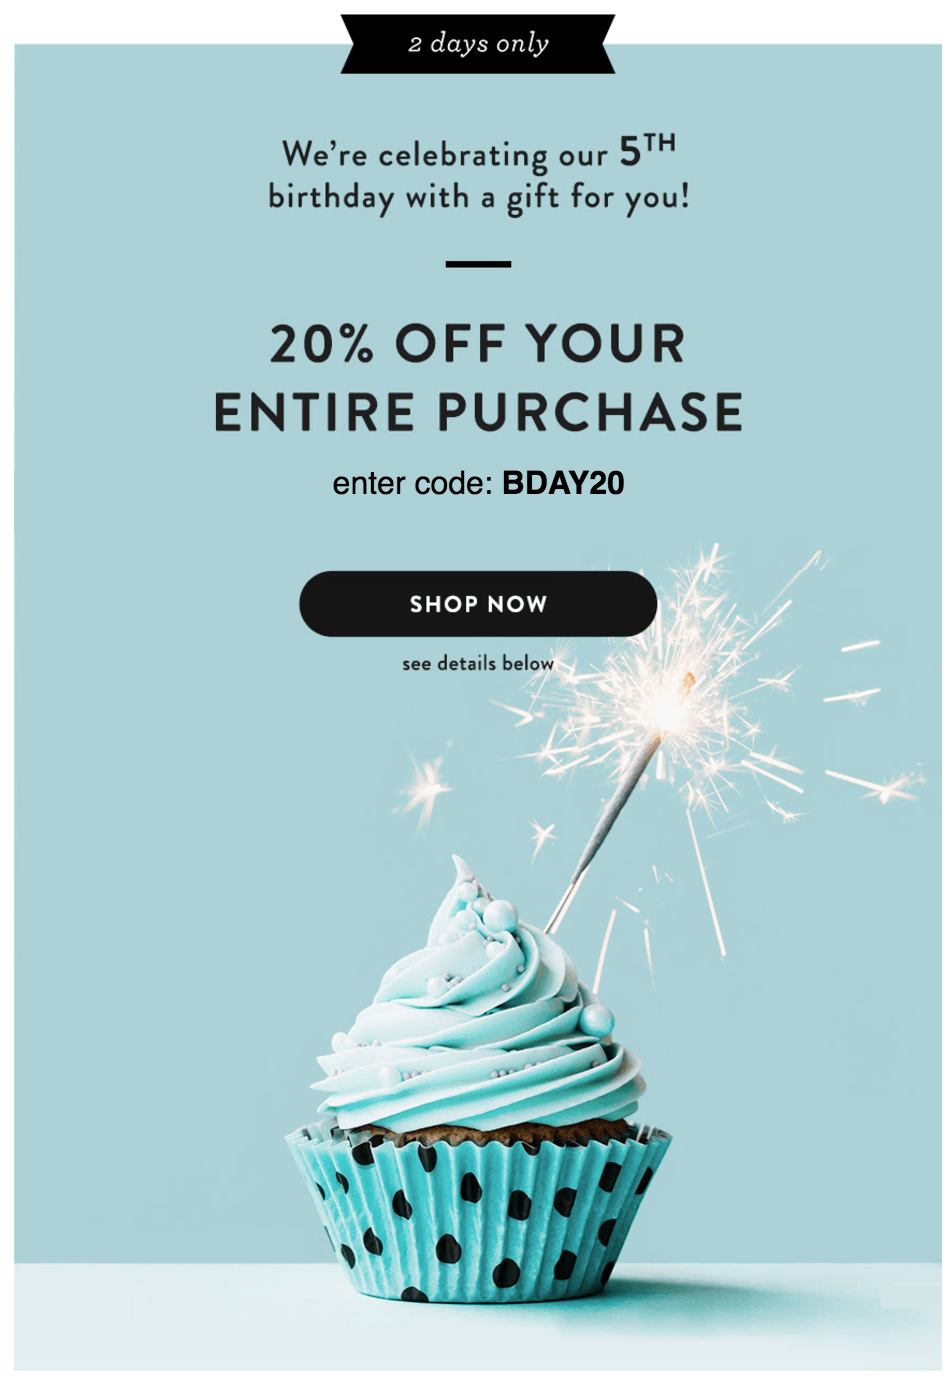 Save 20% Sitewide at Honest Company – 2 Days Only!